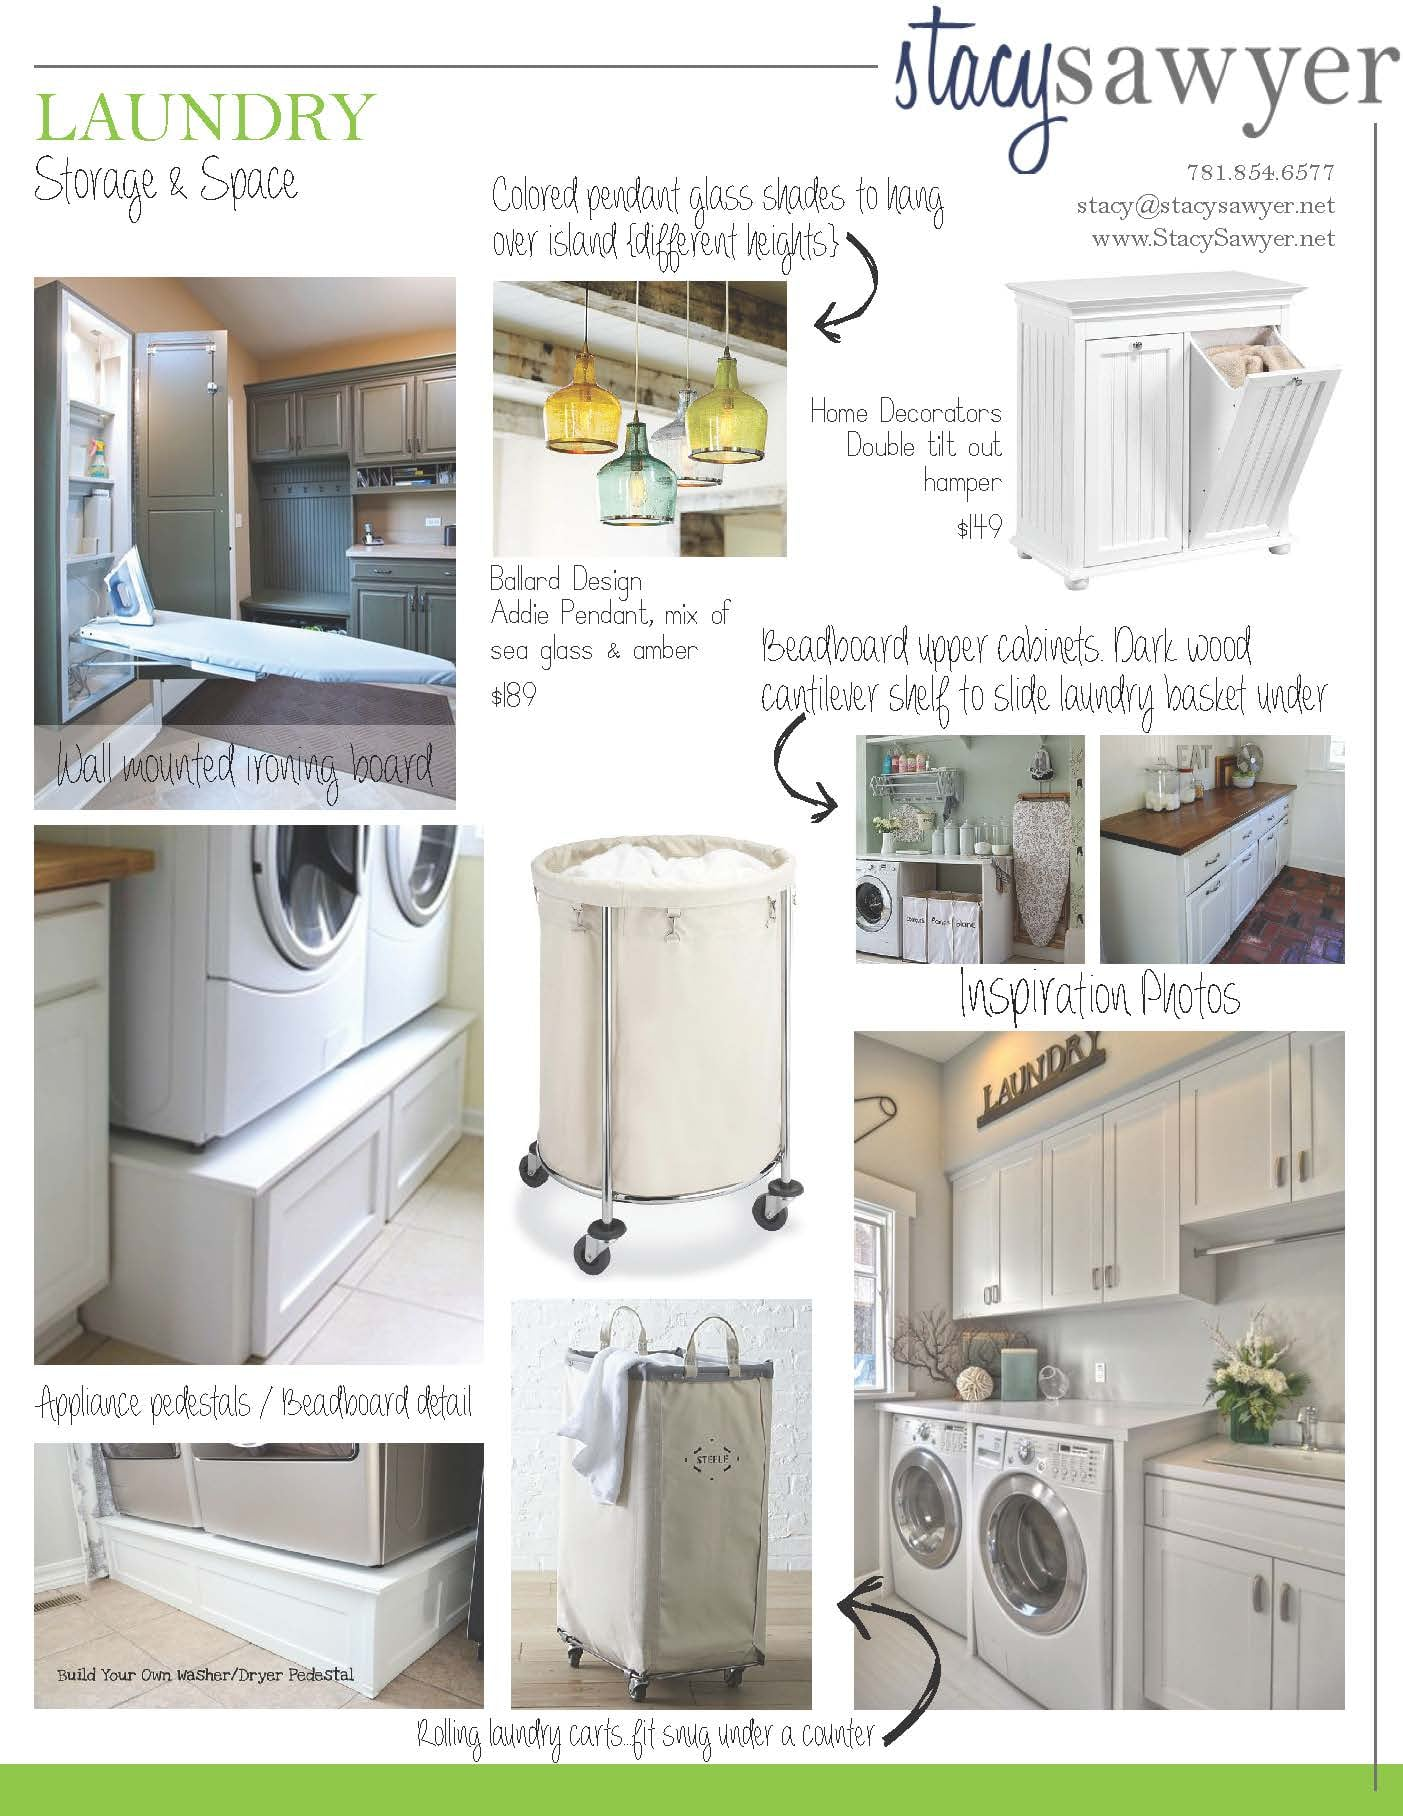 Notes & Laundry Design Boards_Page_3.jpg